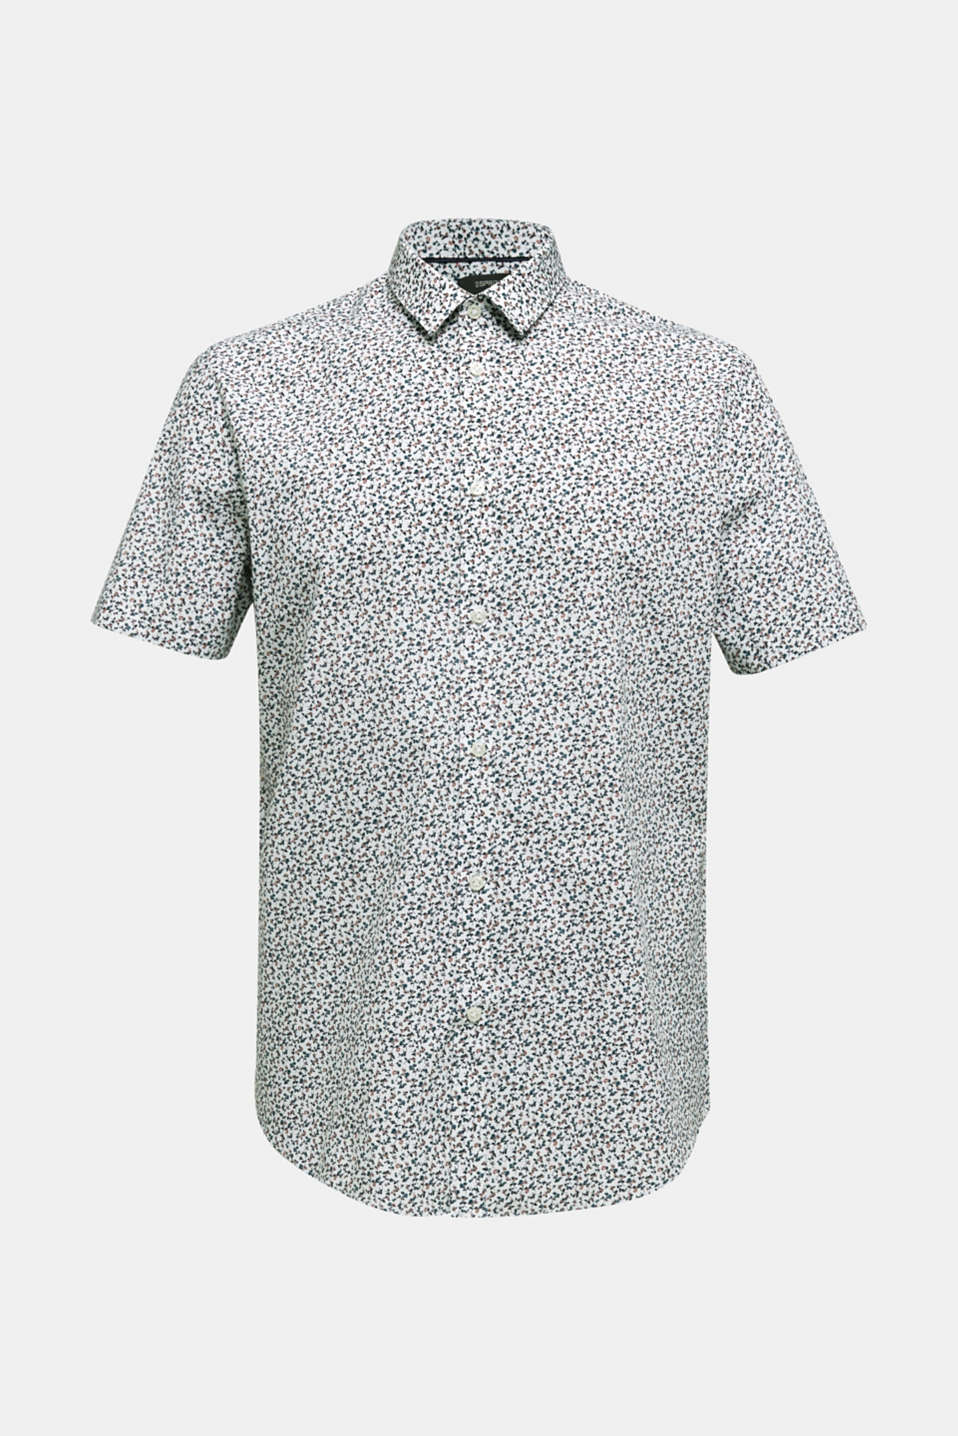 Shirt with mechanical stretch, 100% cotton, WHITE 5, detail image number 6